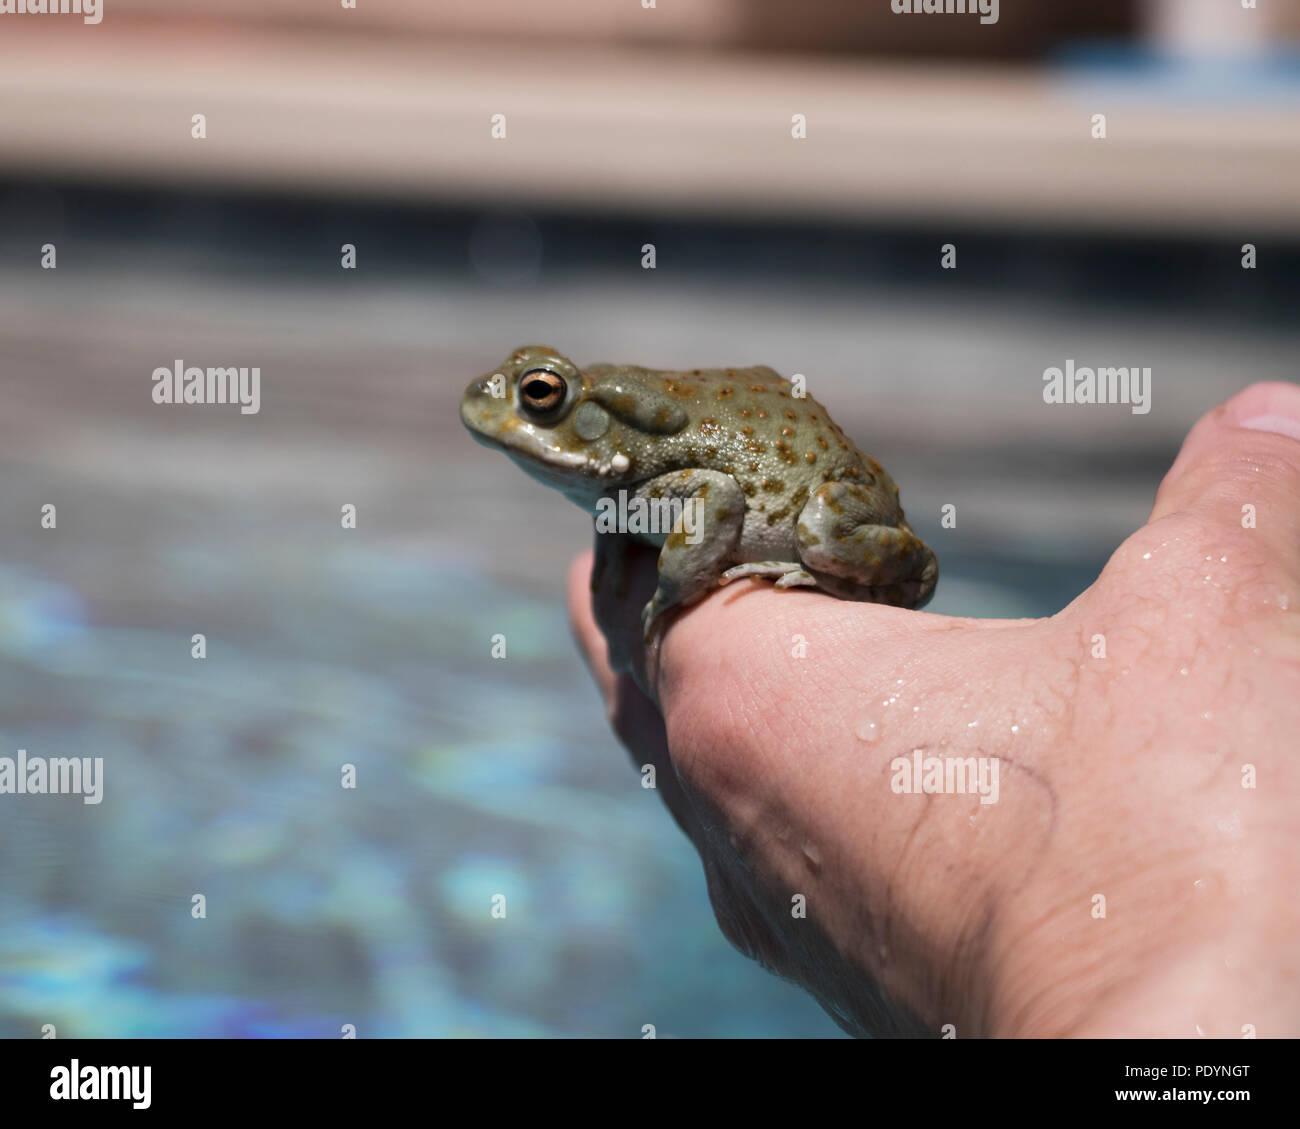 Holding a desert toad in hand. Close up of a frog with shallow dept of field background. Stock Photo